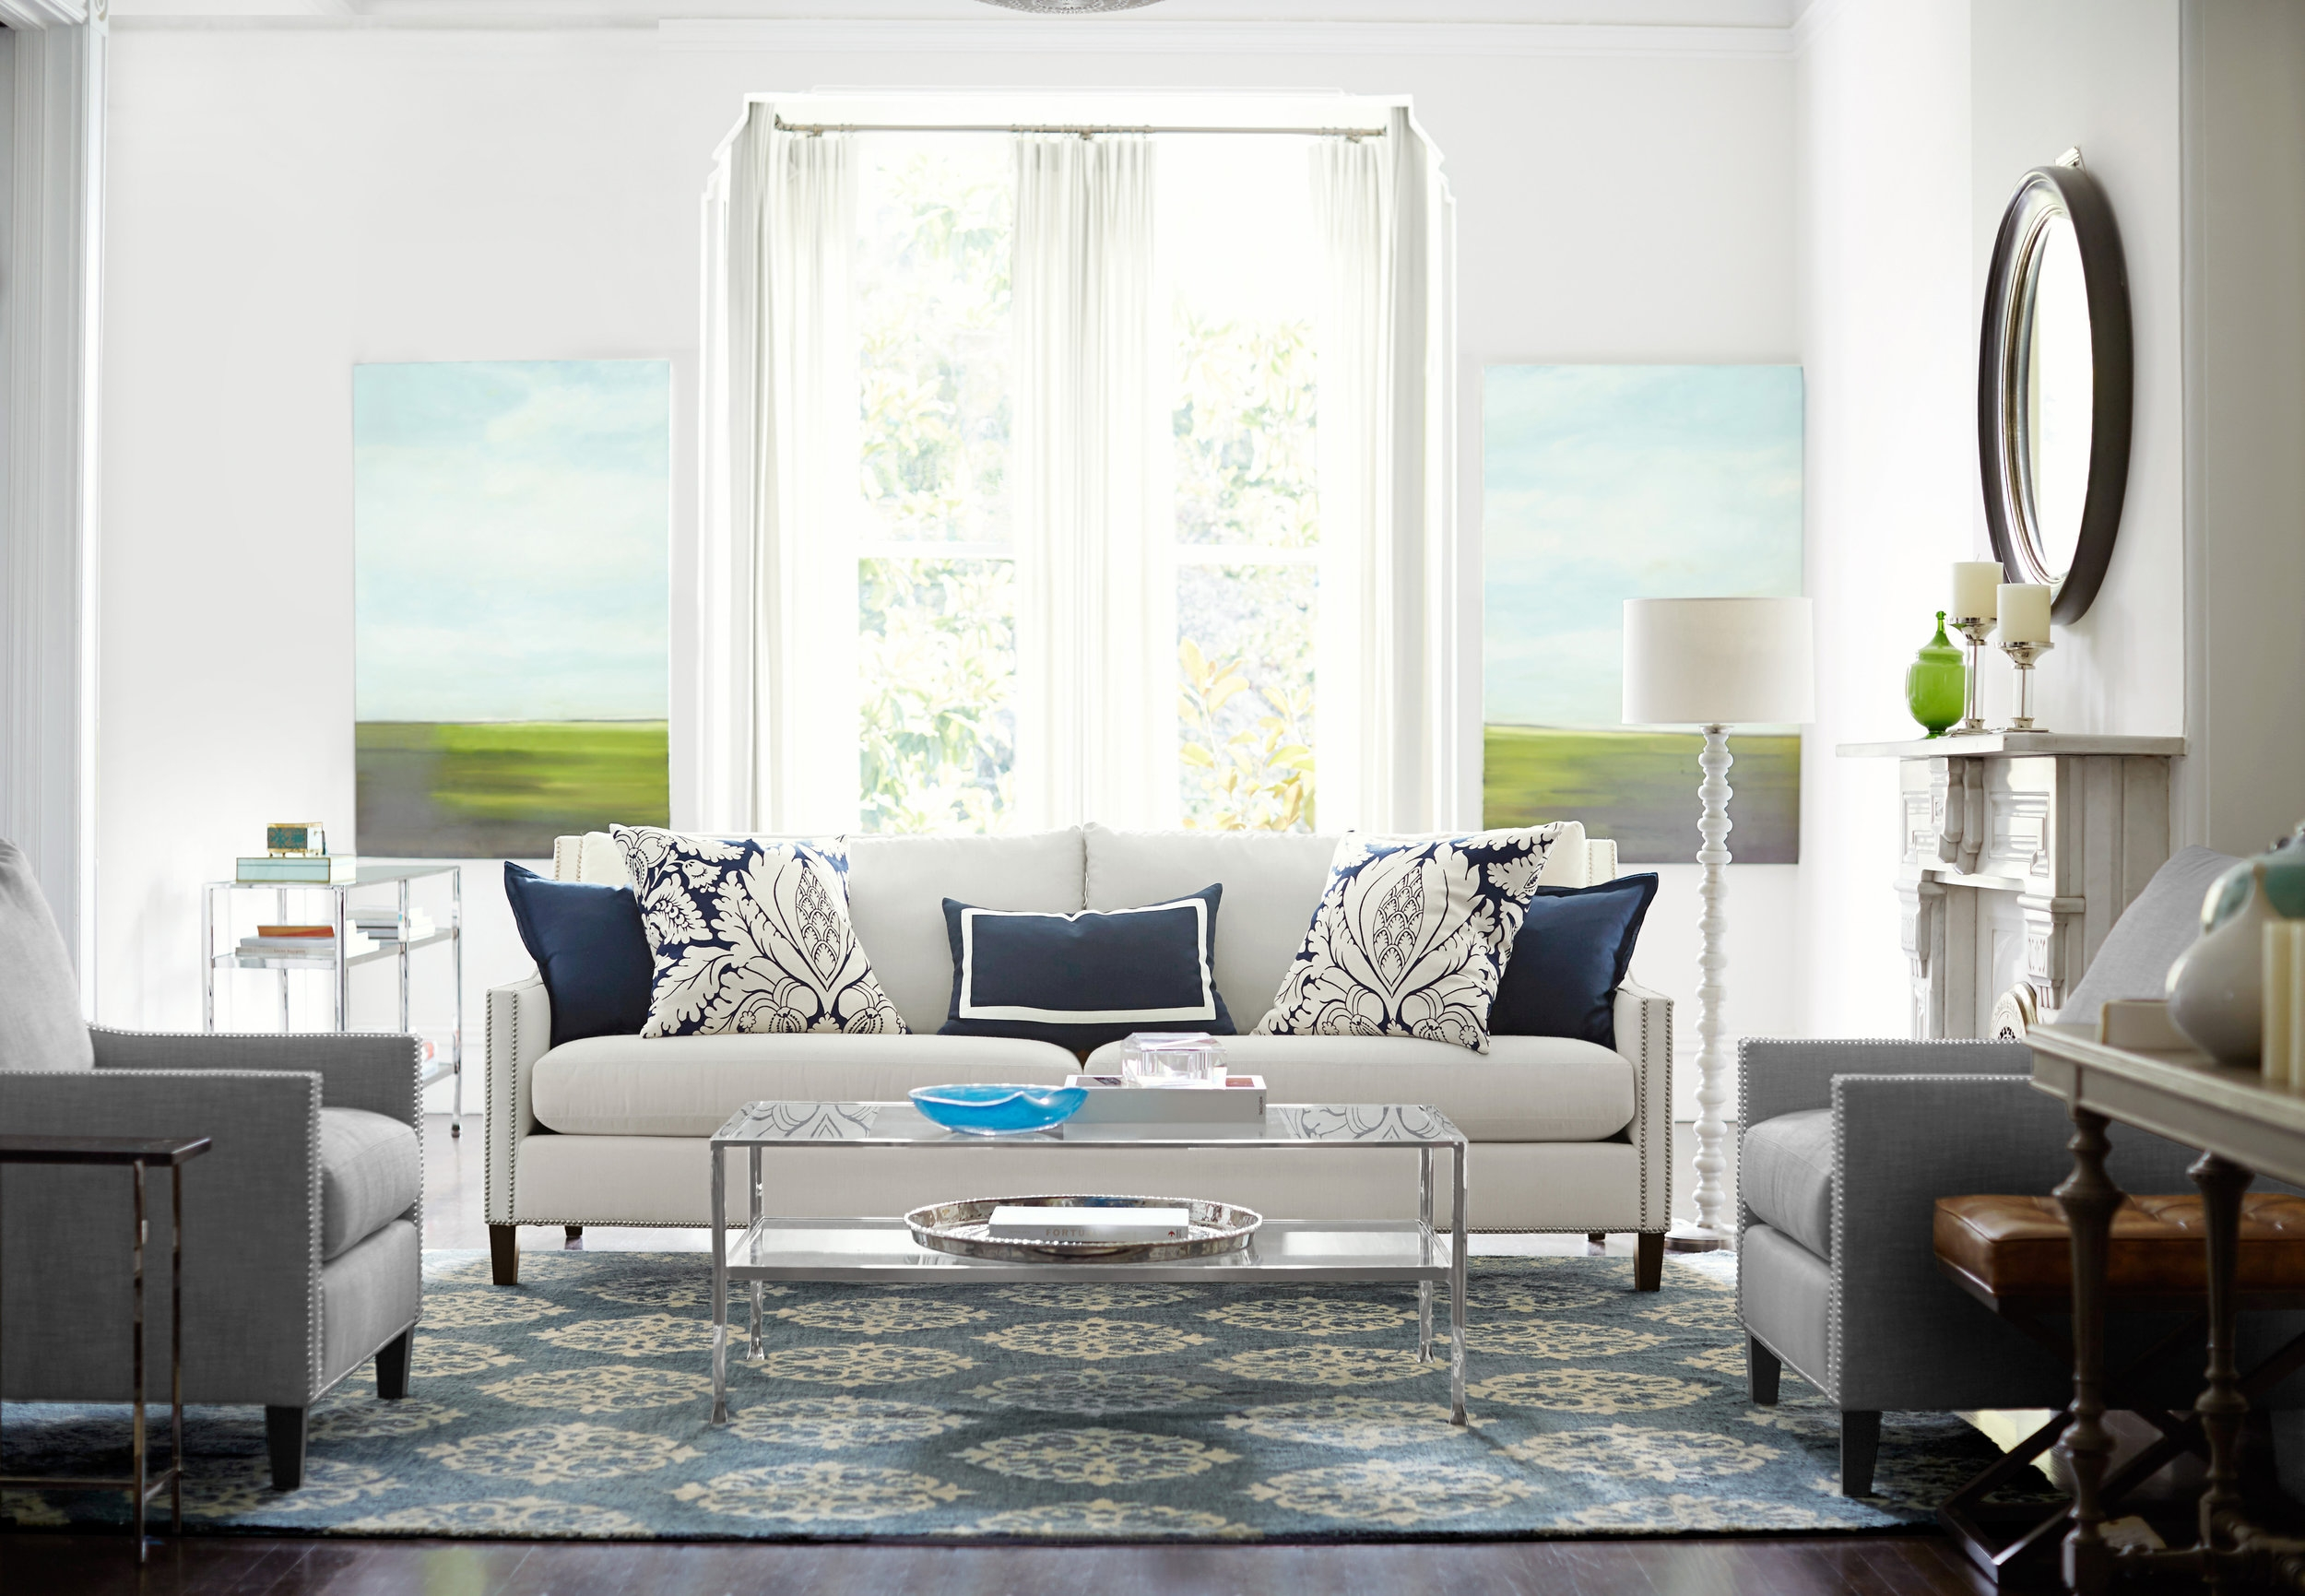 Contemporary and traditional empire scroll rug has the look of an antique time-work work of art and ties this room together as it fits under legs of chairs and sofa. Notice the pillows, pair of paintings and pair of chairs that also make this room cohesive. Photo courtesy of Pottery Barn.